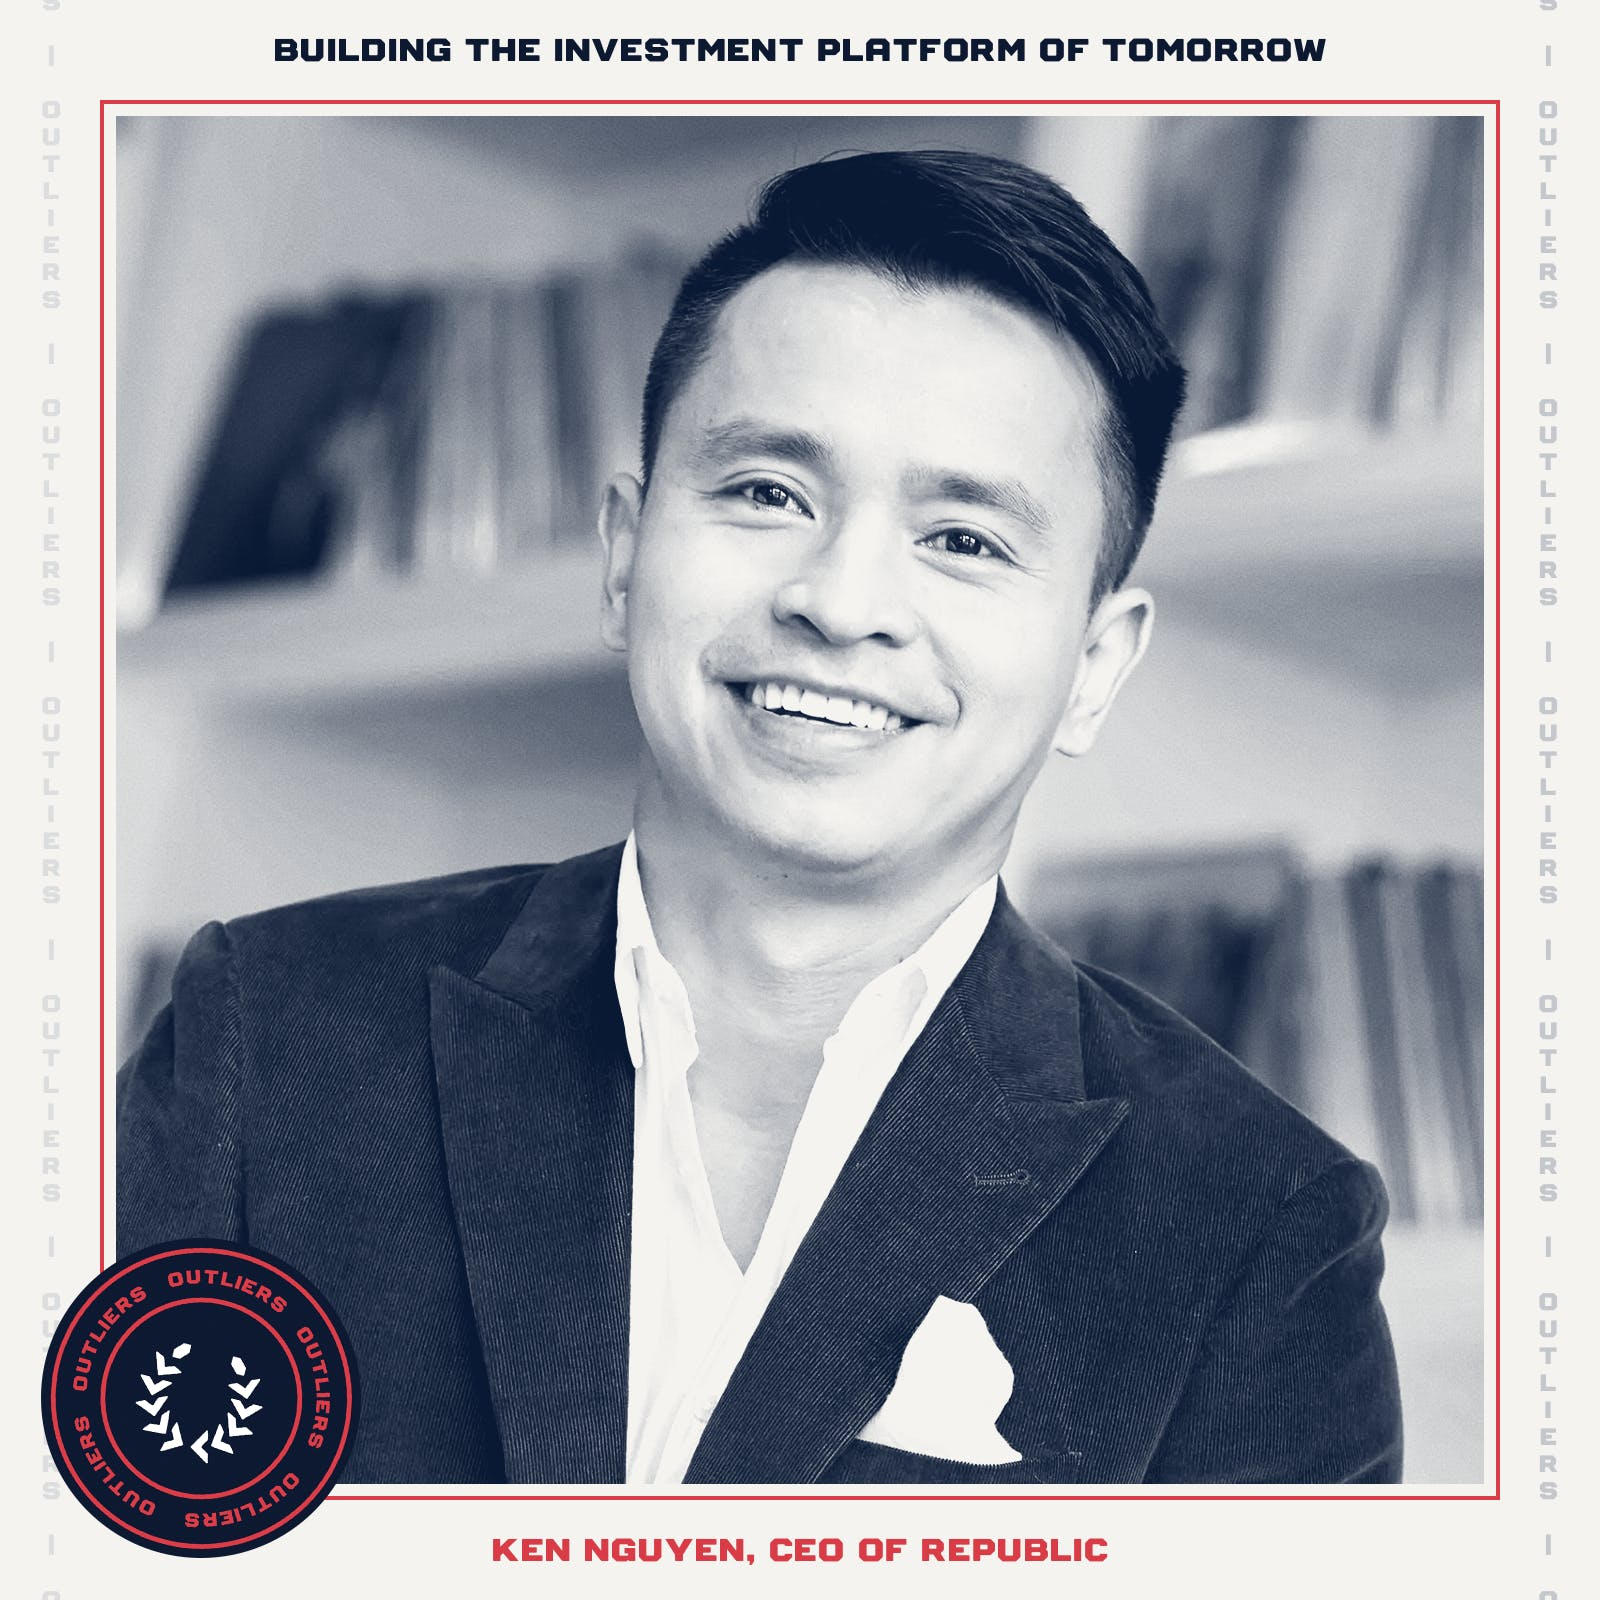 #31 Ken Nguyen of Republic: Building the Investment Platform of Tomorrow